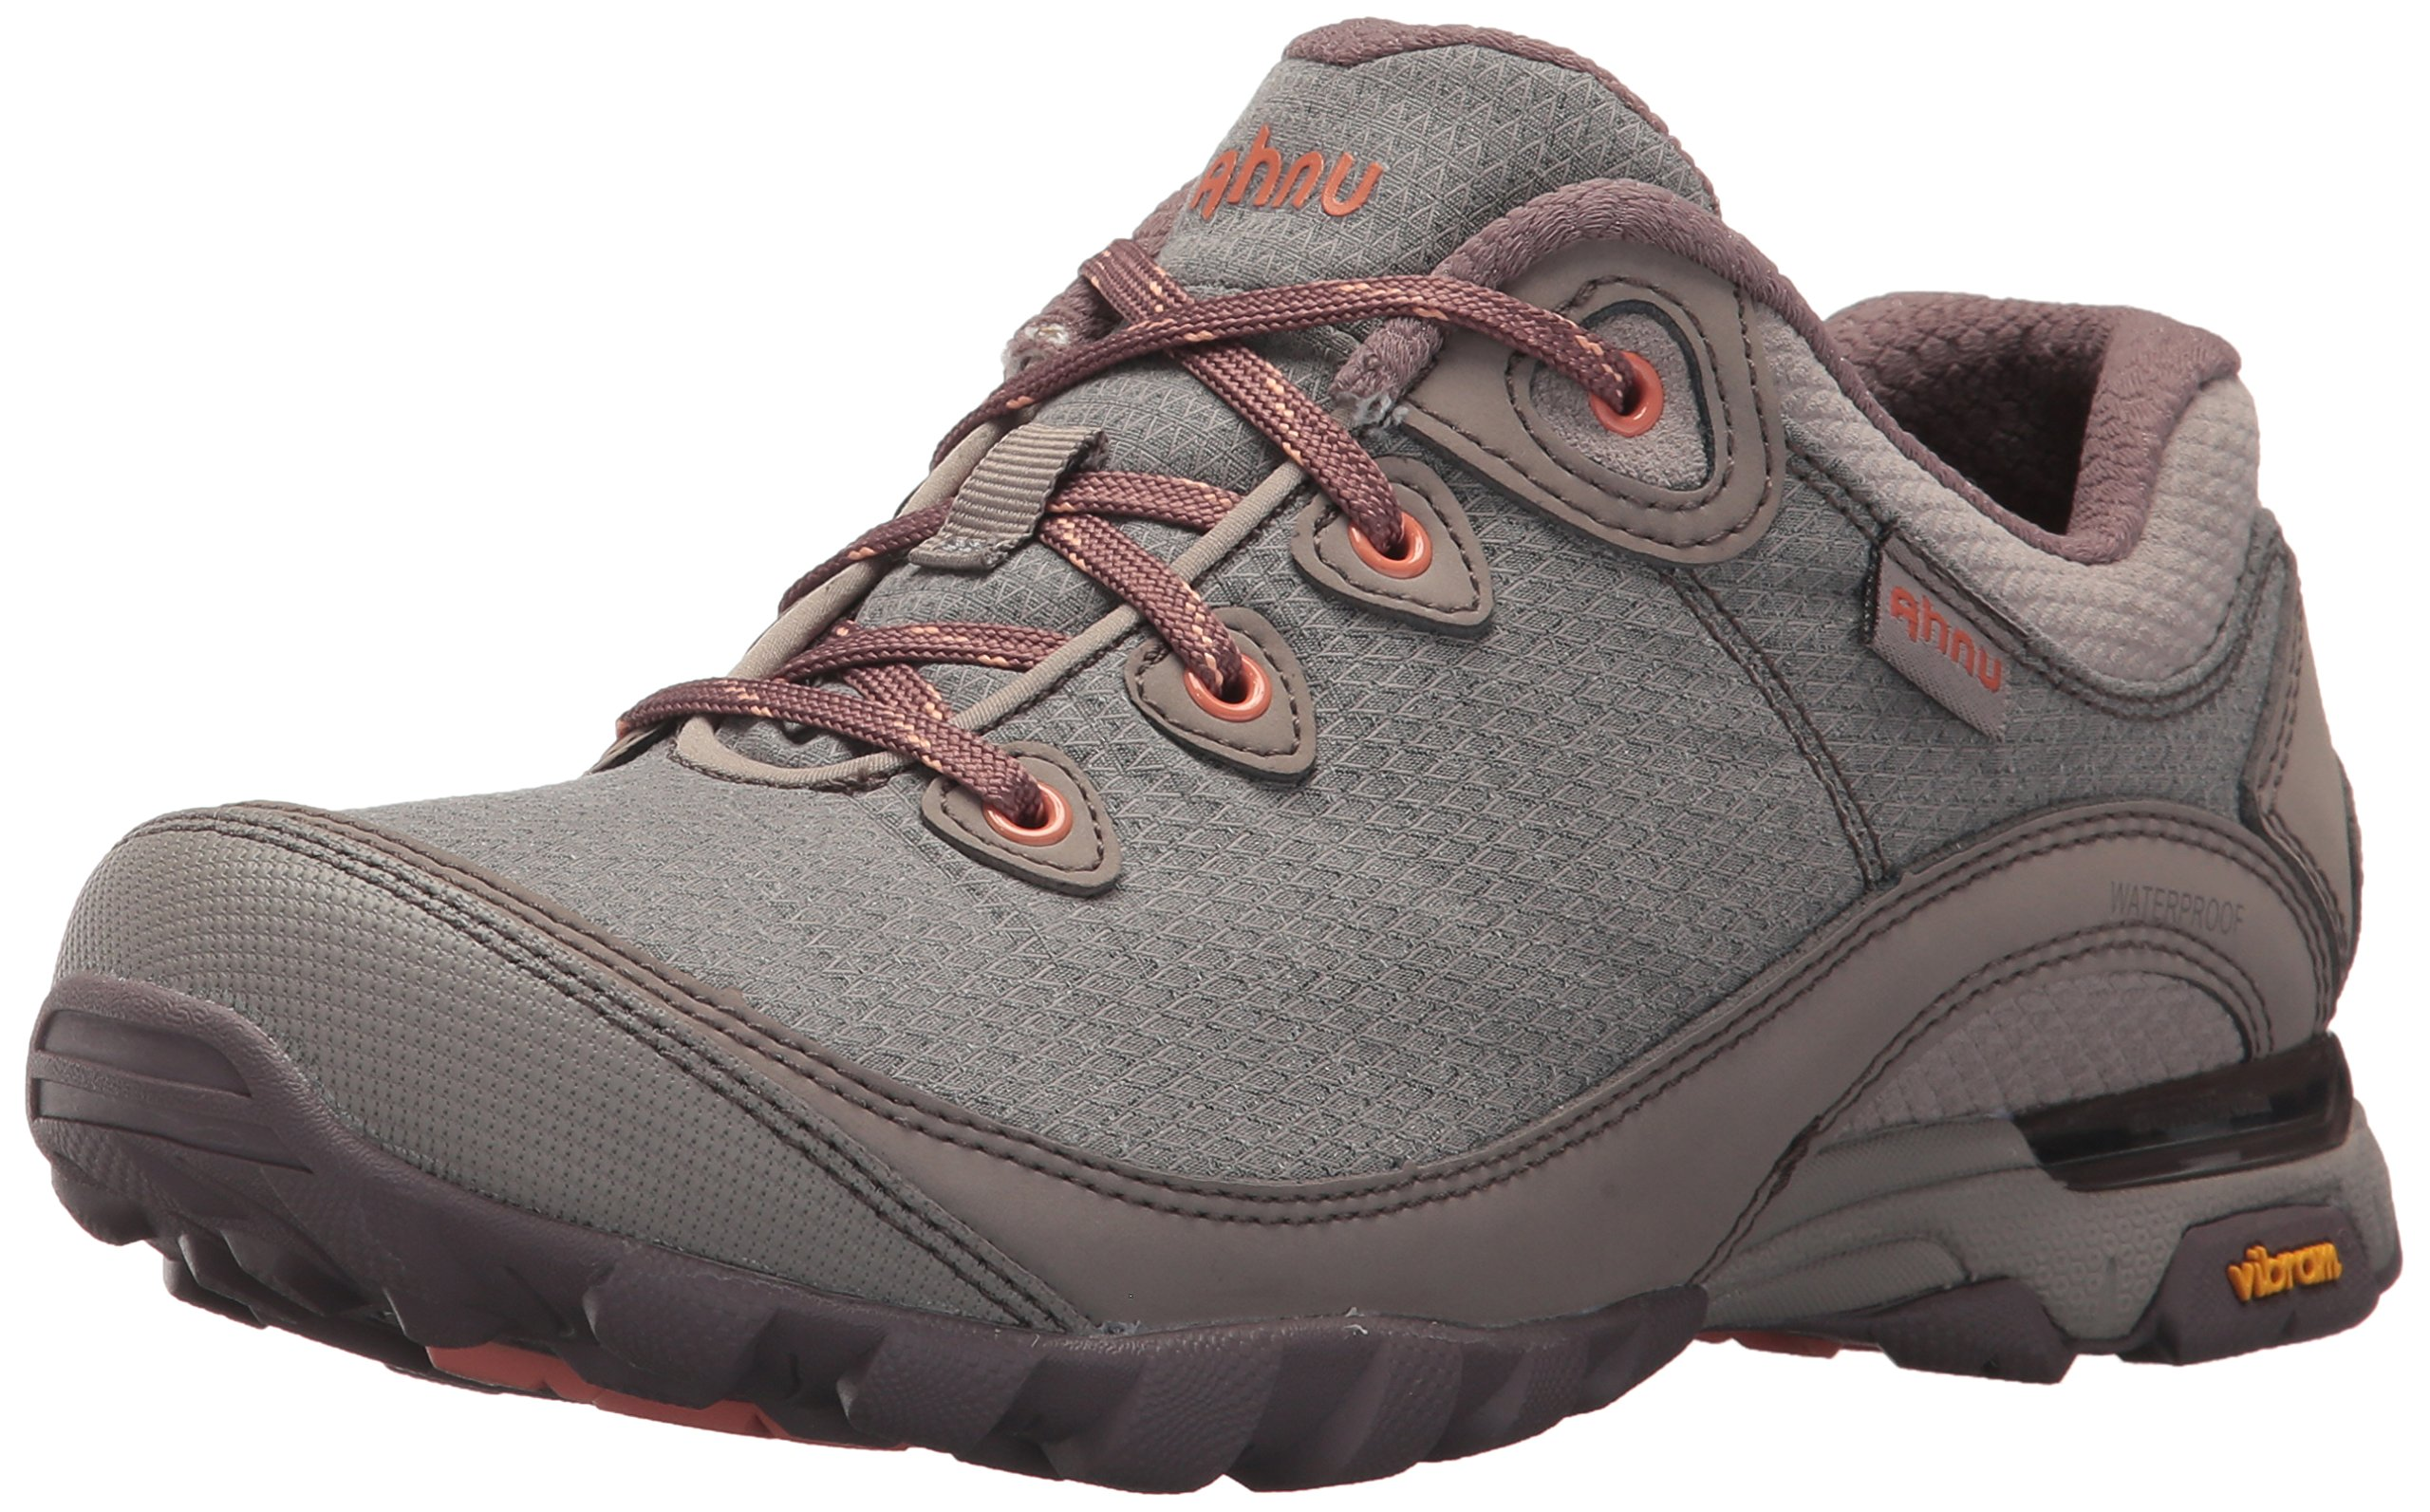 Ahnu Women's W Sugarpine II Waterproof Hiking Boot, Satellite, 8.5 Medium US